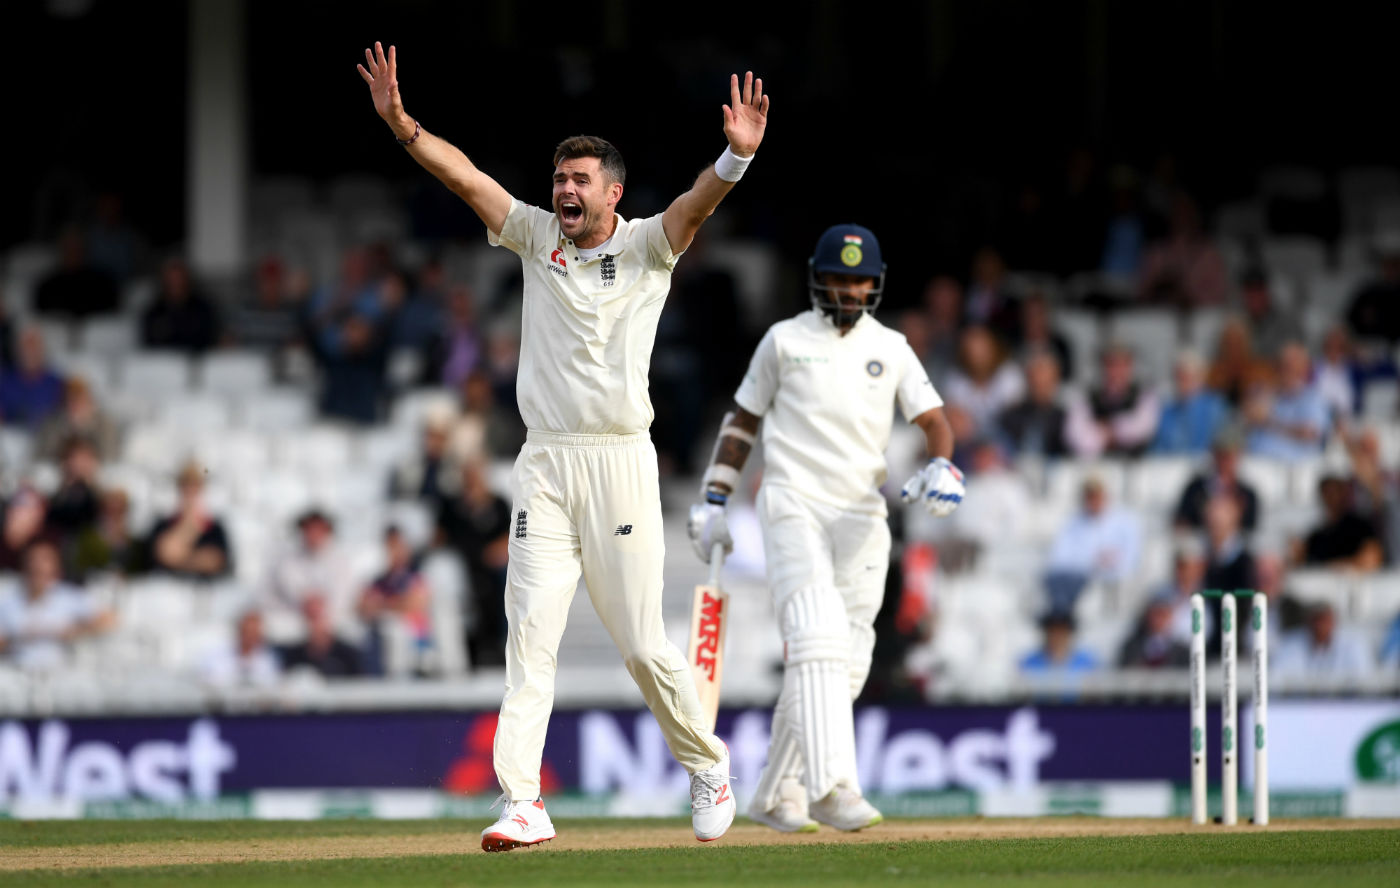 Glenn McGrath Was A Much Better Bowler Than Me: James Anderson